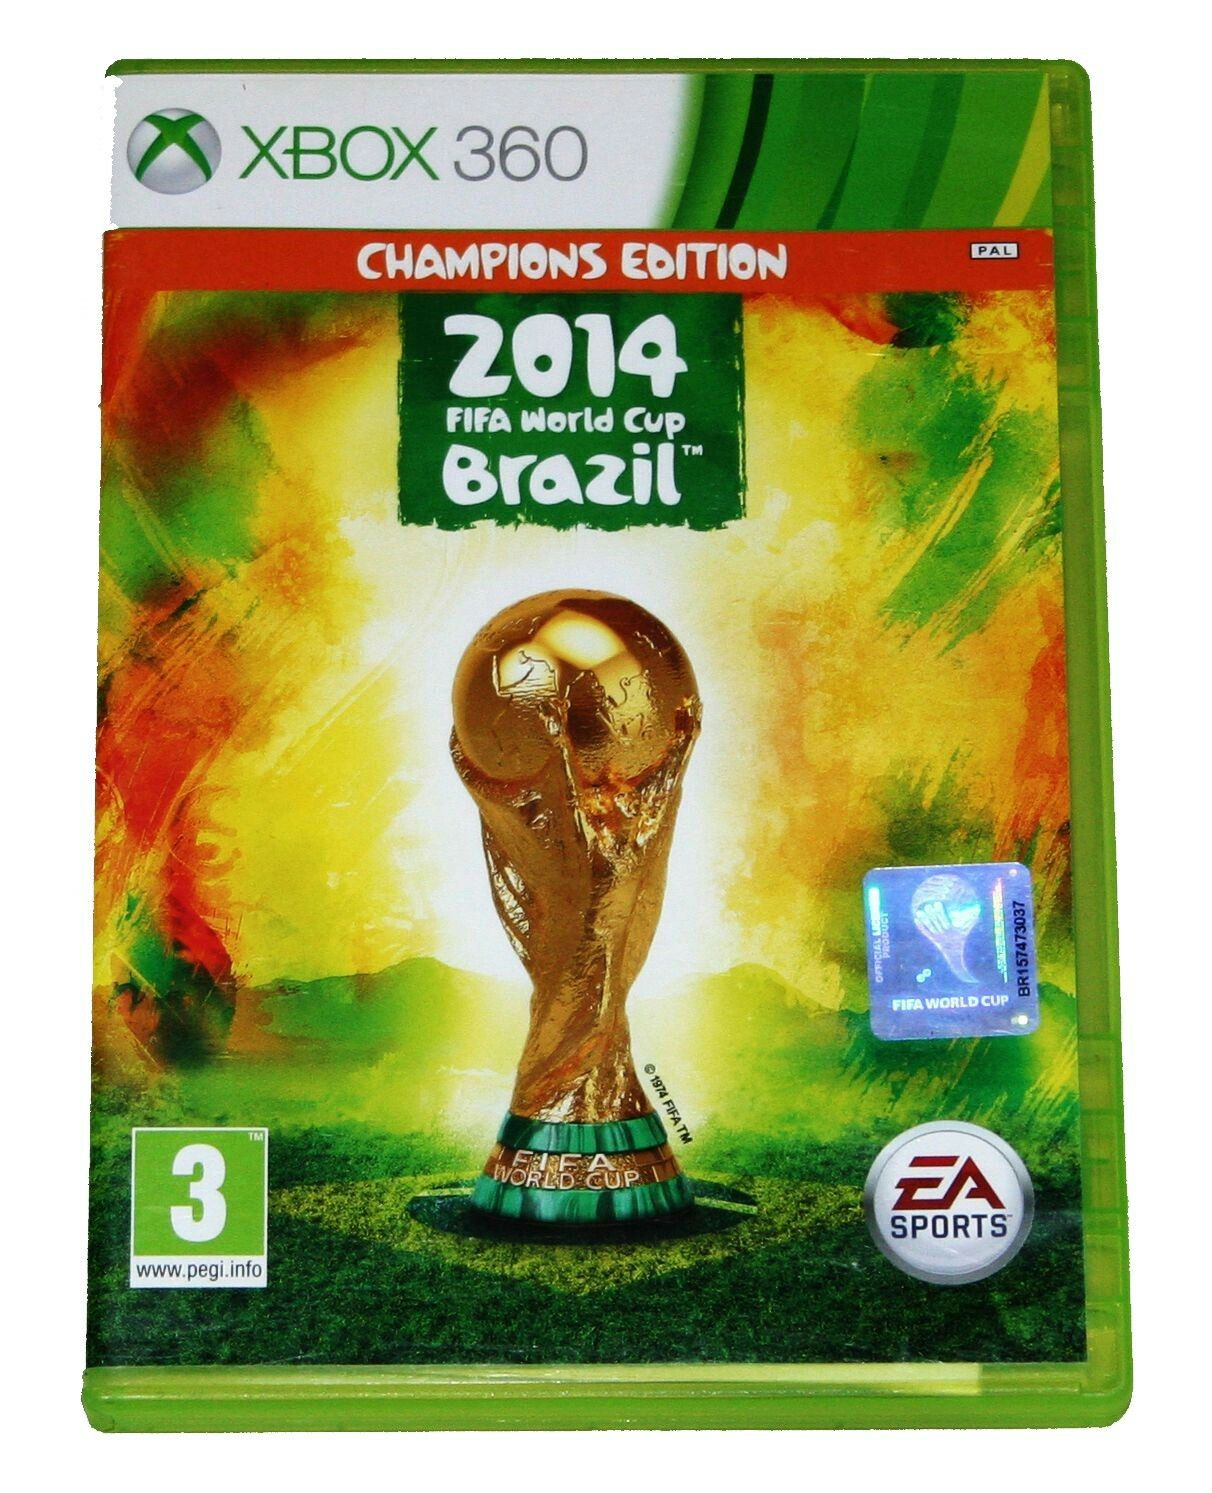 Fifa 14 World Cup Fifa World Cup 2014 Video Games